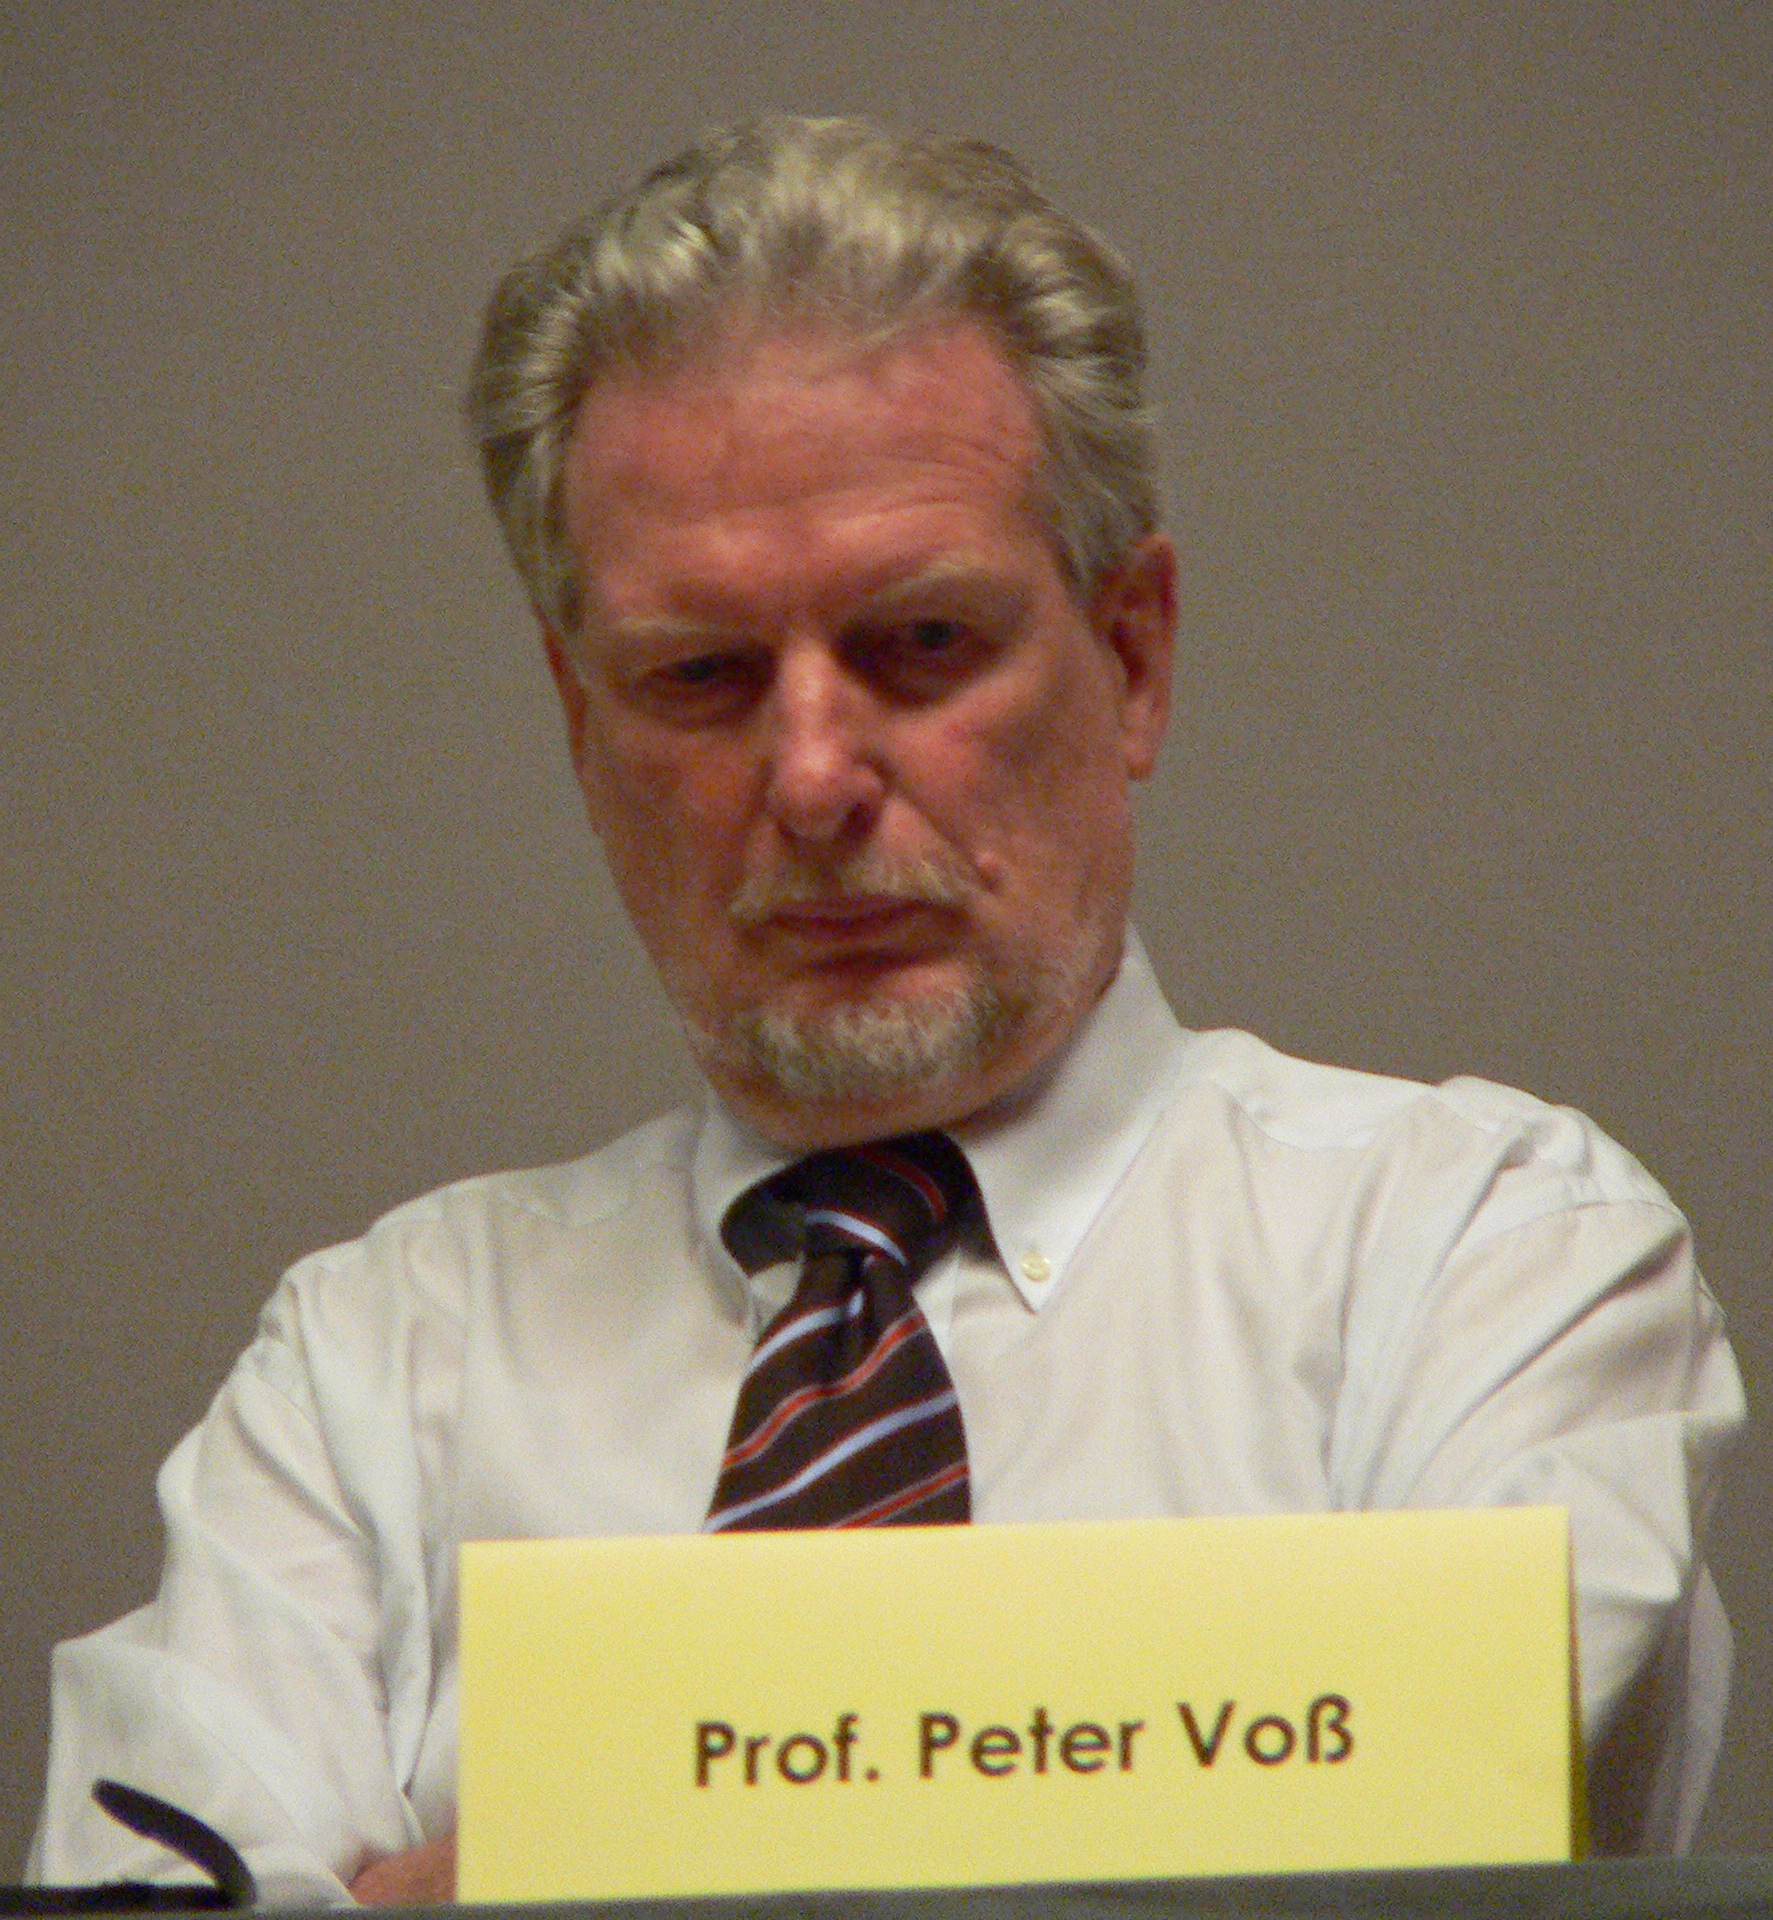 File:Peter Voss 2006 fcm.jpg - Wikimedia Commons